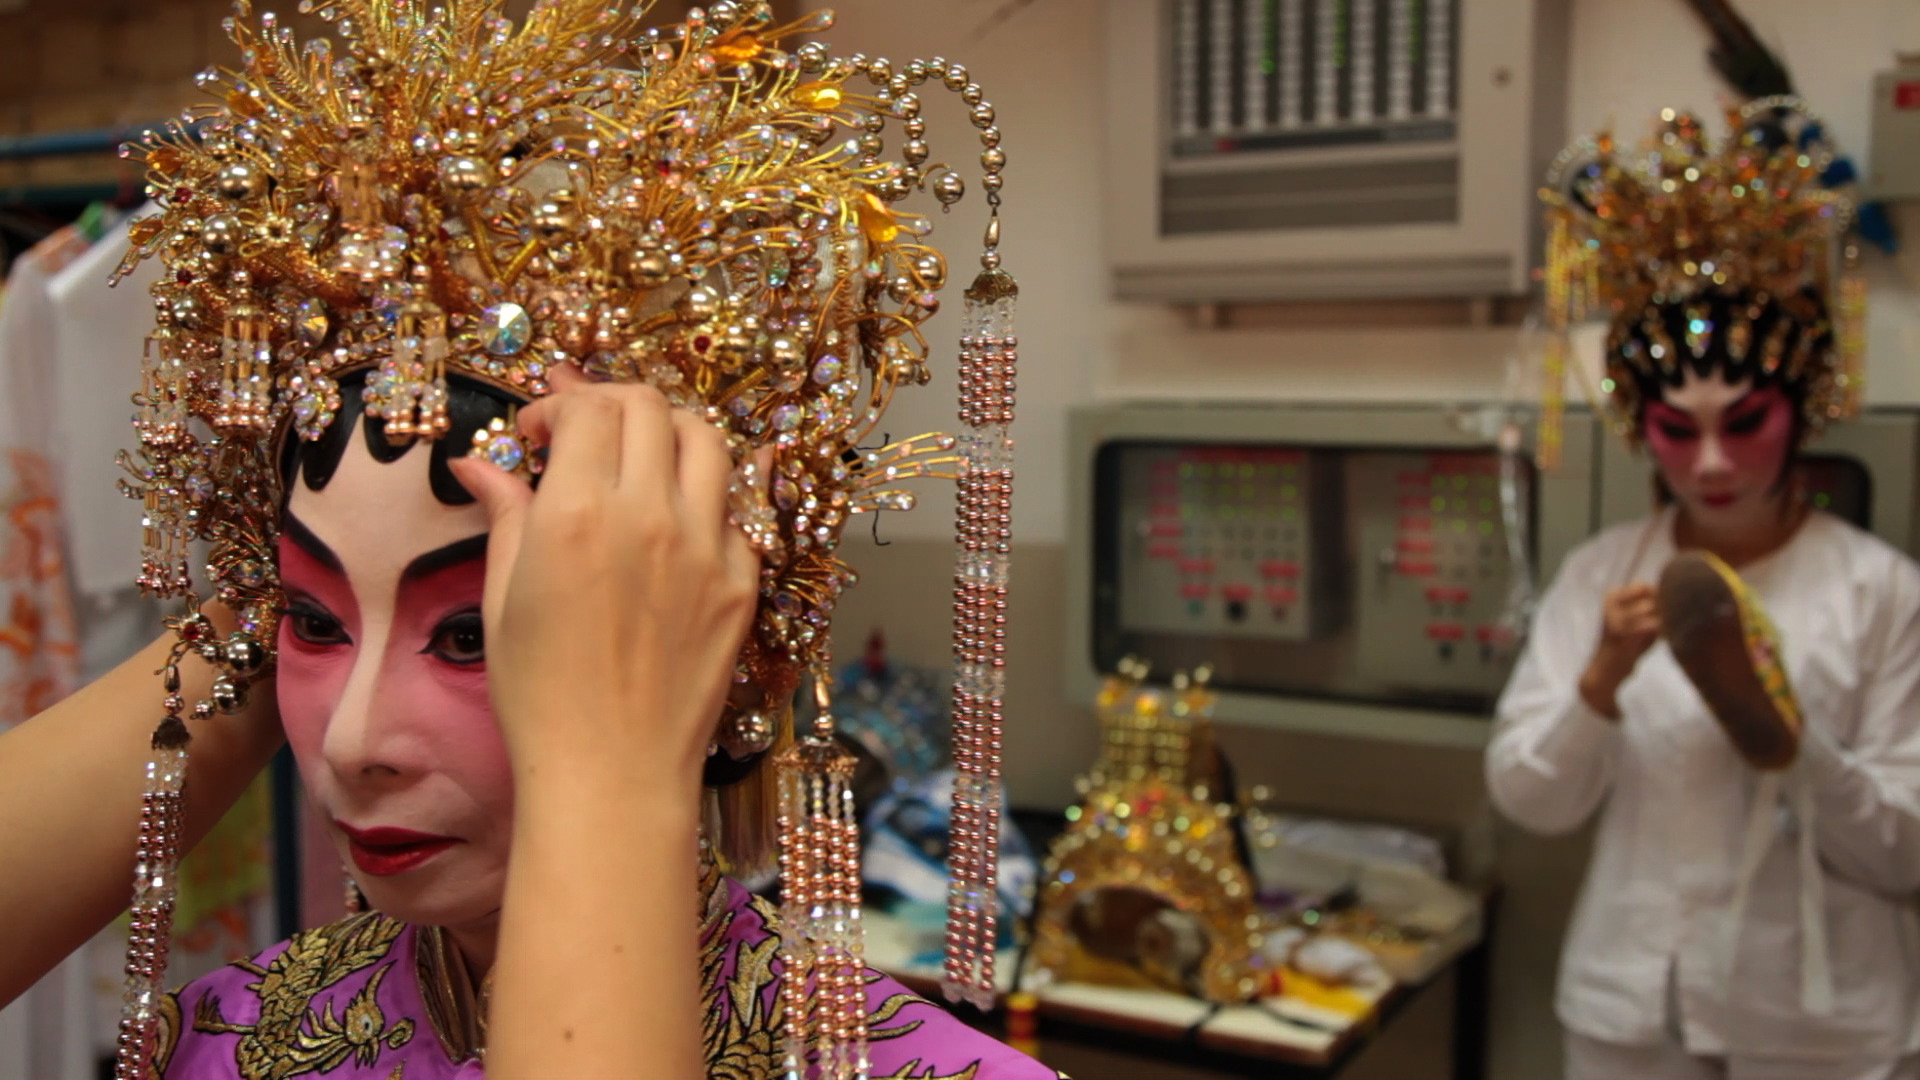 Teresa Lai Shuk-Yee, a Cantonese Opera performer, waits as a fellow artist puts the finishing touches to her hairdo before a show in September 2012 at the Koshan theatre in Hong Kong.